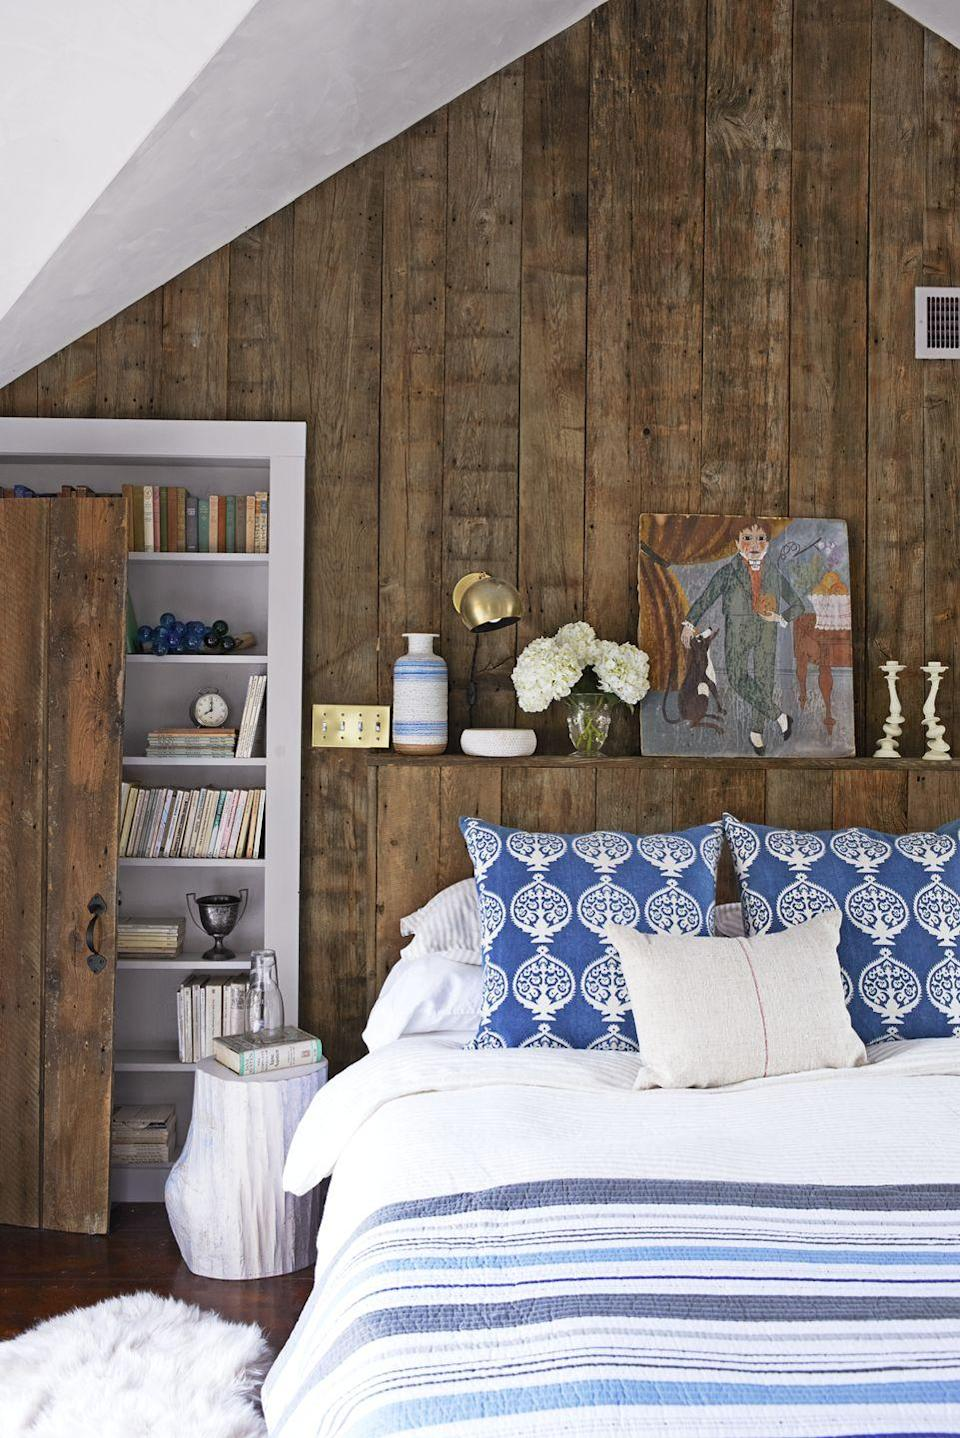 <p>This room gives us major log cabin vibes. A floating shelf above a short headboard shows off artwork, lamps, and other decor, but this bedroom also pulls in an adorable stump-shaped nightstand as an added perch.</p>